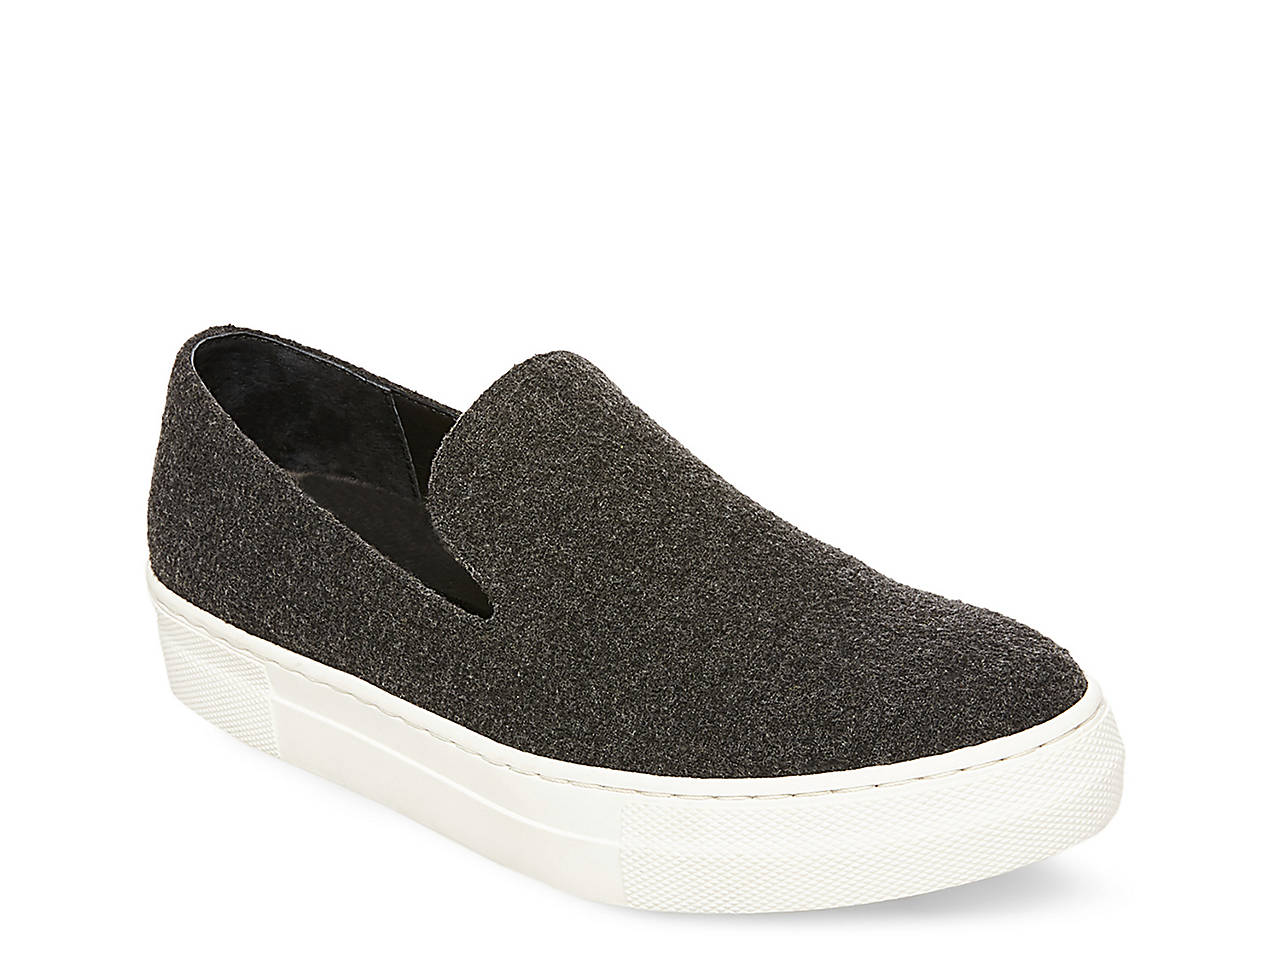 6e4af9bf1e4 Steven by Steve Madden Arden Slip-On Sneaker Women s Shoes